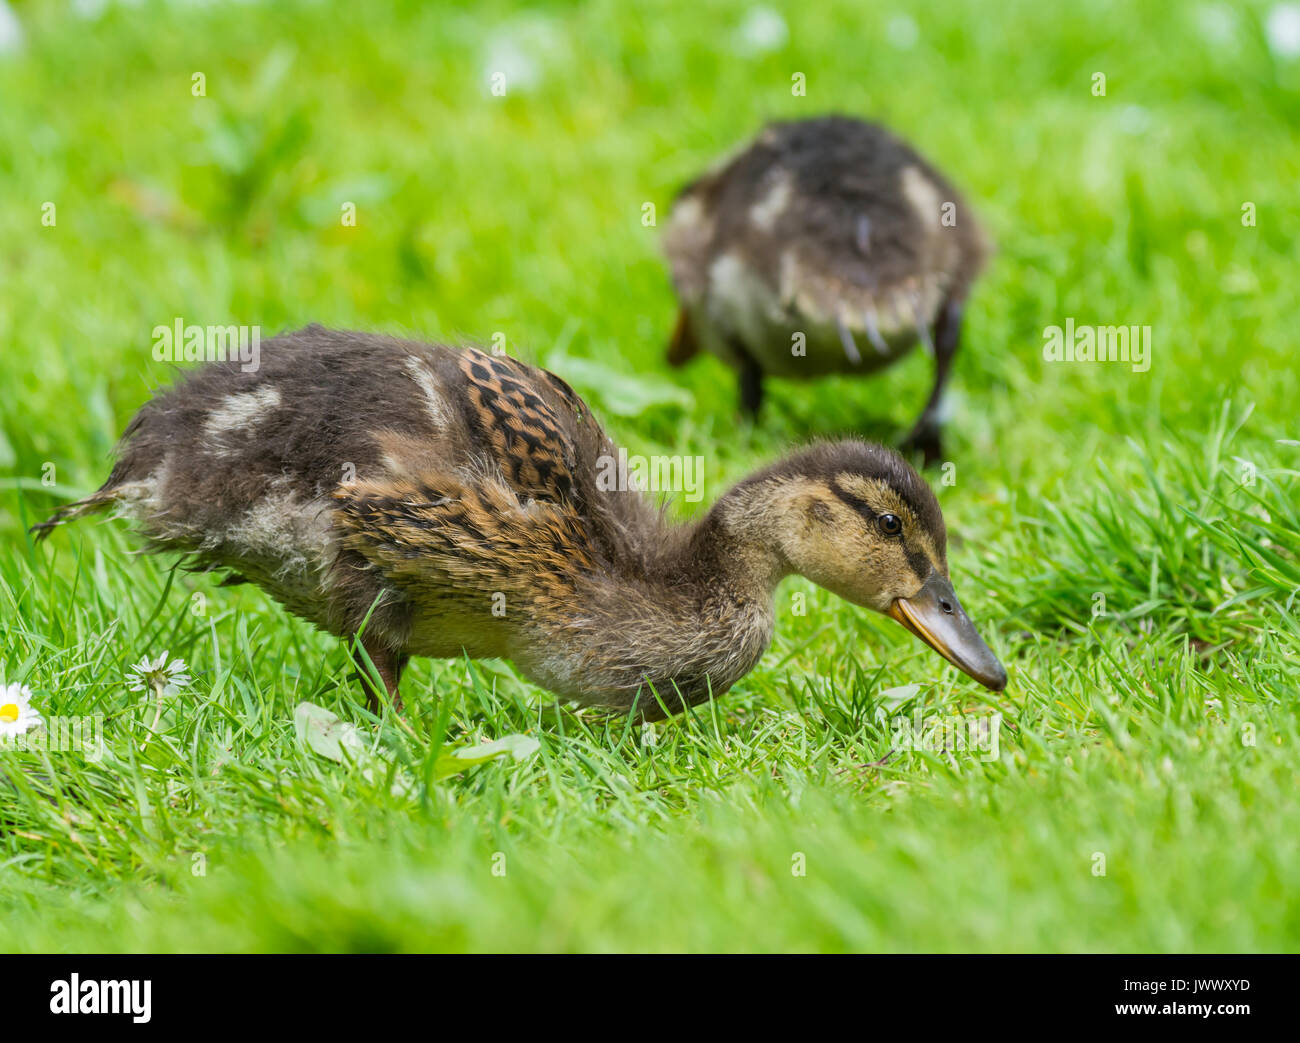 Cute Mallard duckling (Anas platyrhynchos) on grass in Summer, in West Sussex, England, UK. Young Mallard duck chick. - Stock Image